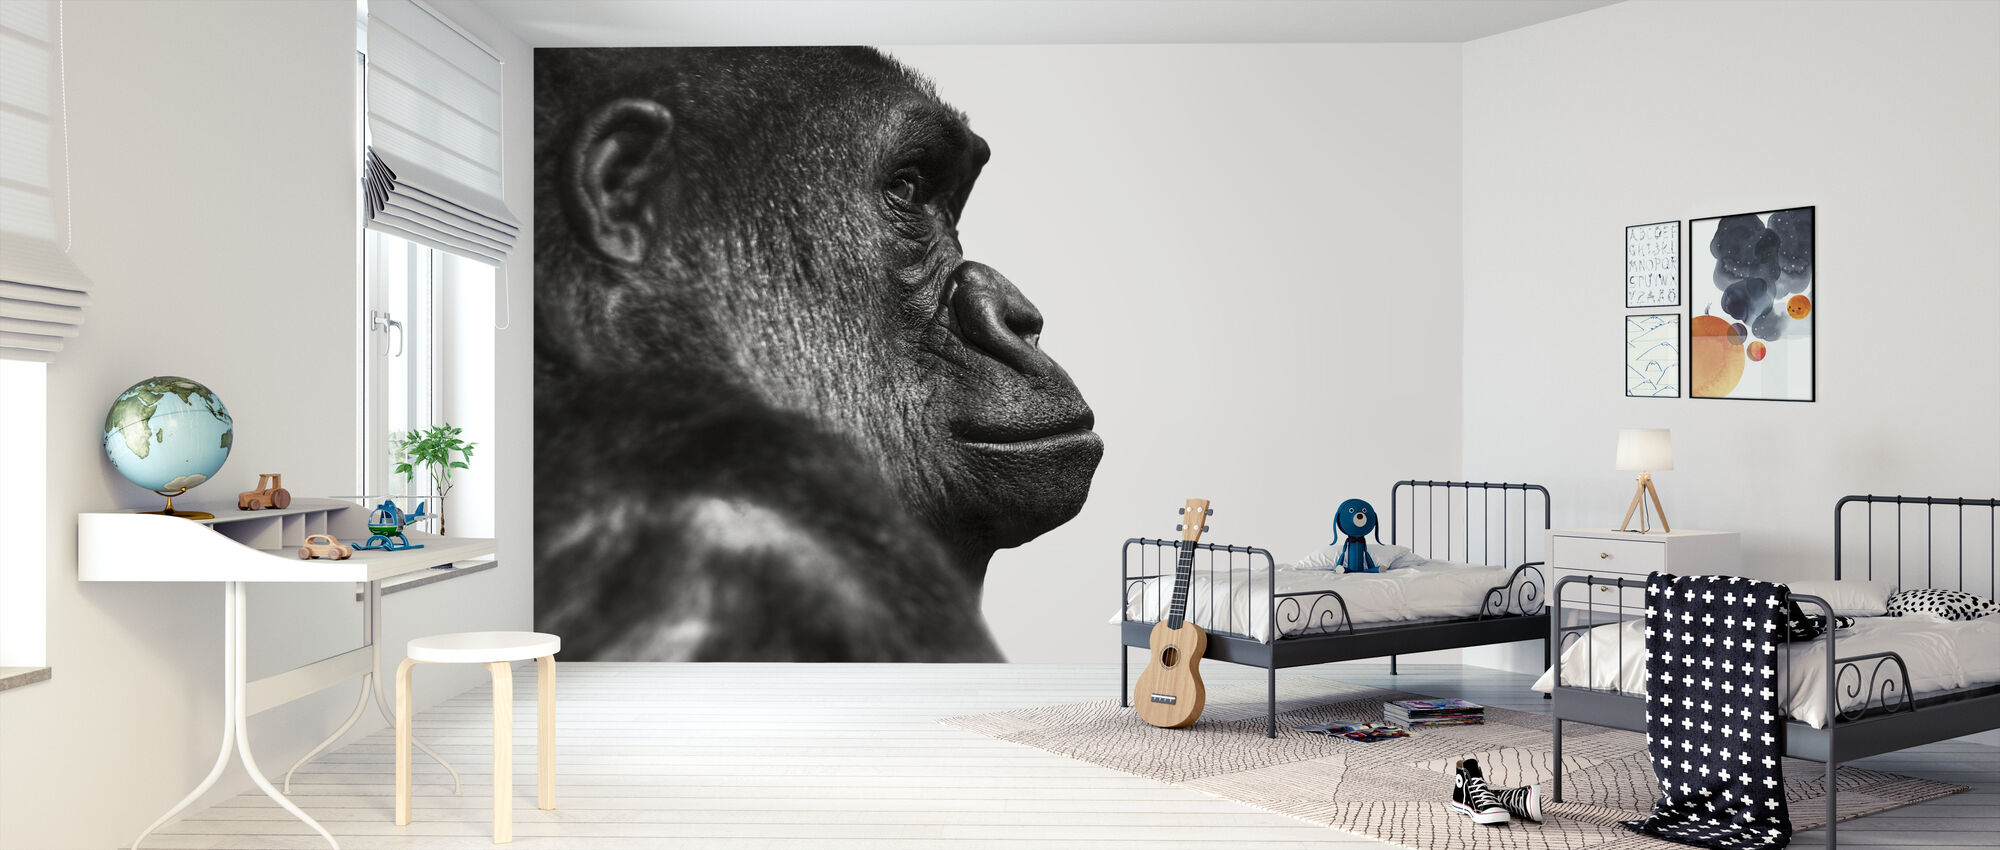 Gorilla - b/w - Wallpaper - Kids Room